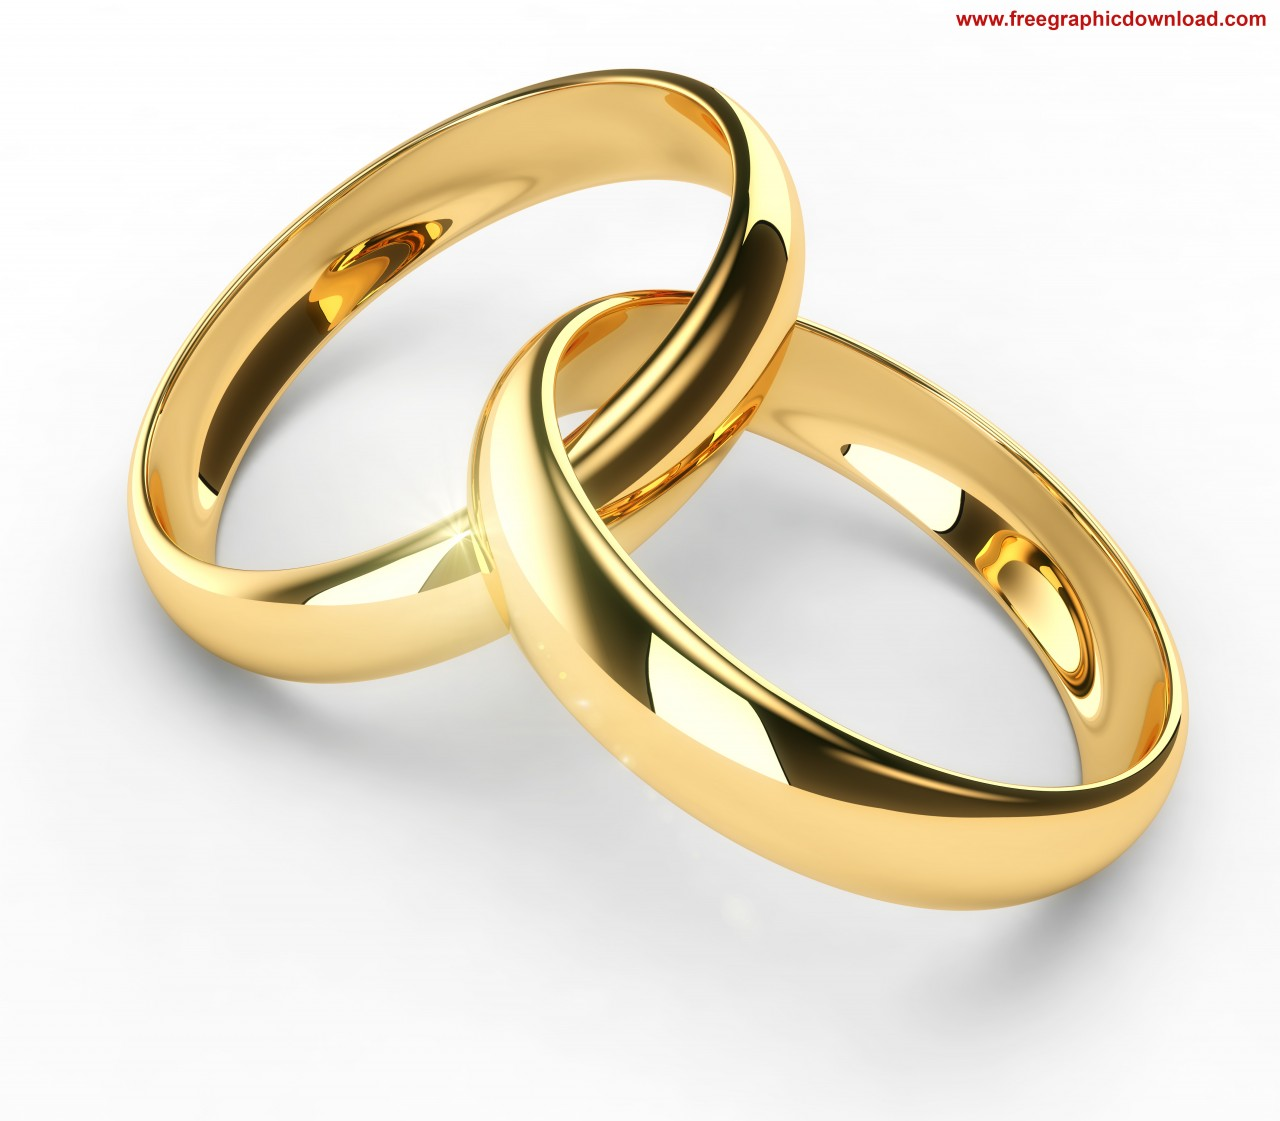 Wedding Rings   The Anglican Parish Of Forster Tuncurry